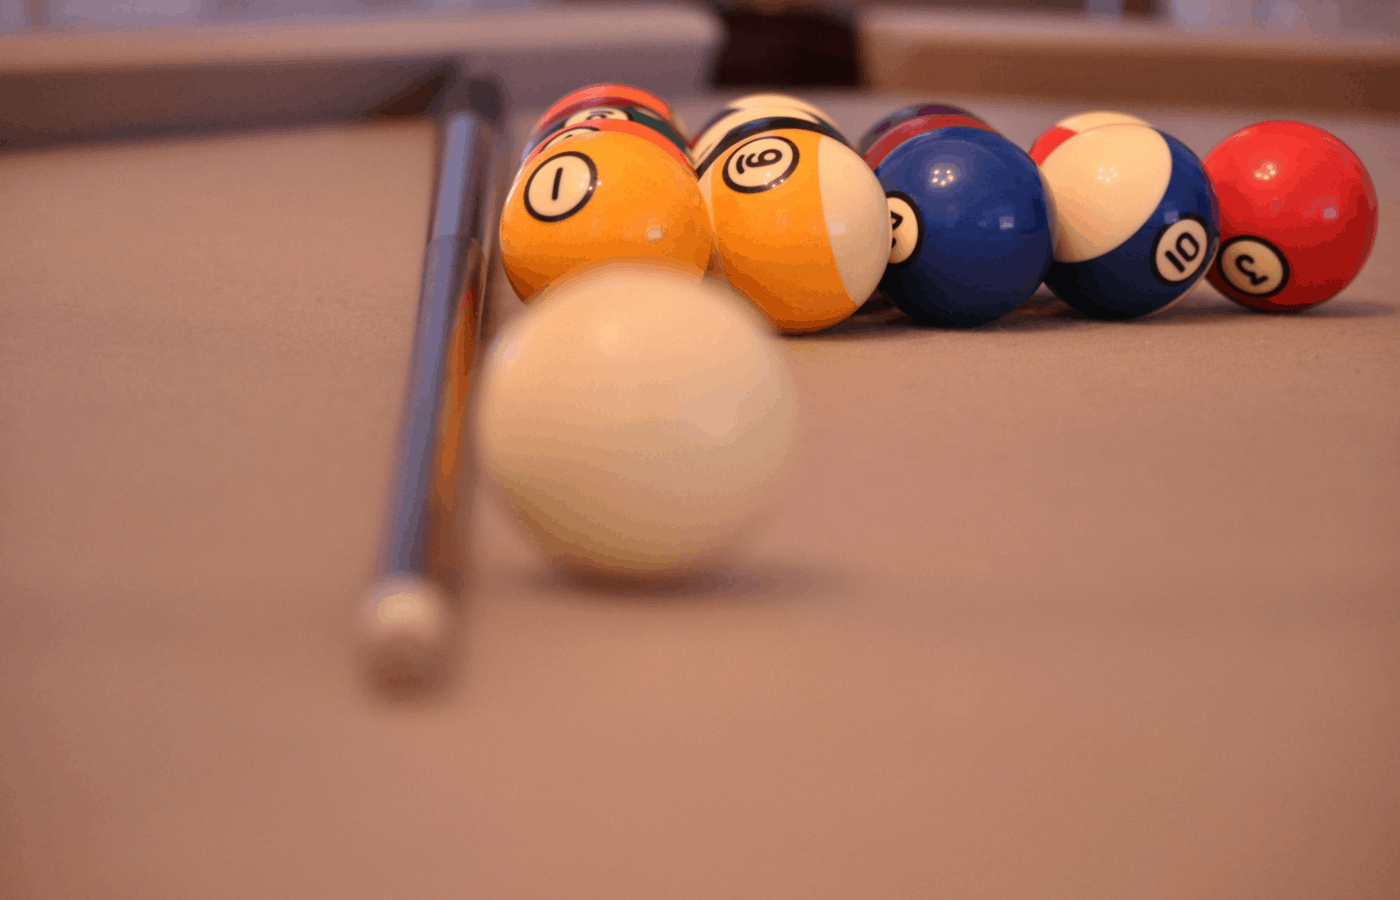 how to clean ivory pool balls